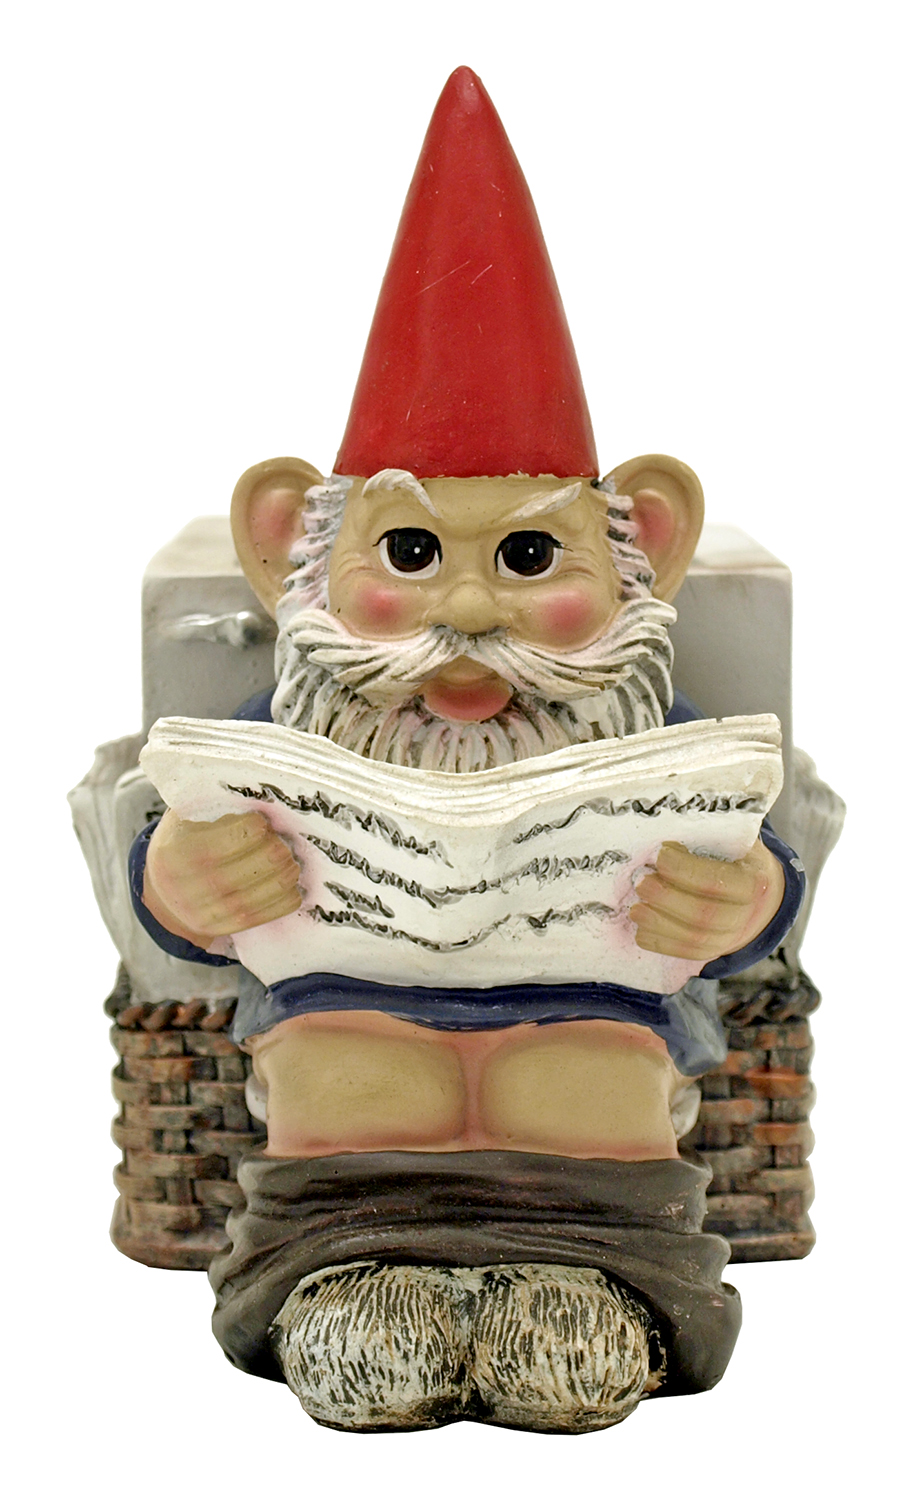 Serious Business Pooping Gnome Toothbrush Holder Figurine